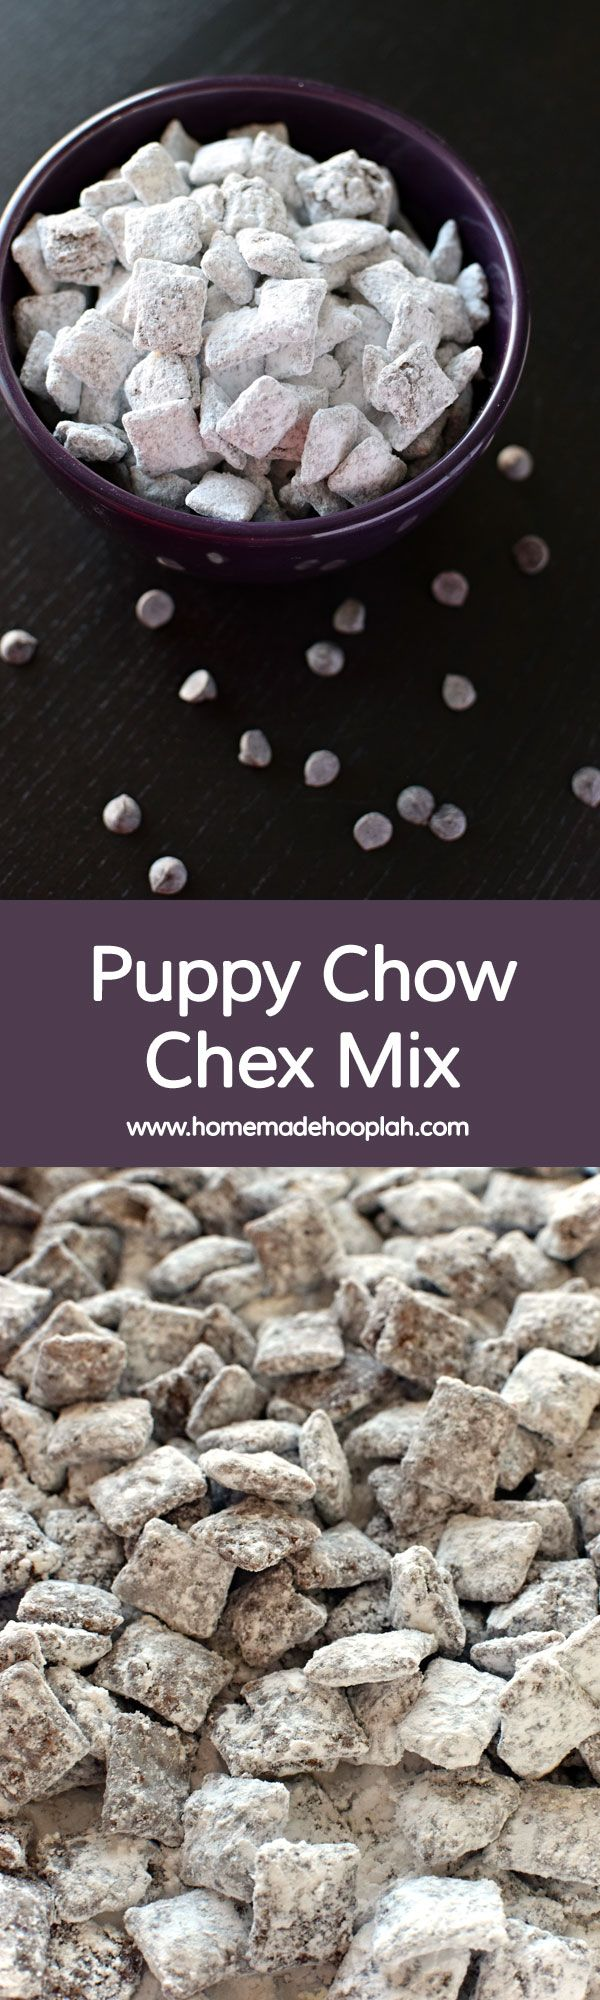 Puppy Chow Chex Mix Crunchy Chex Cereal Covered In Chocolate